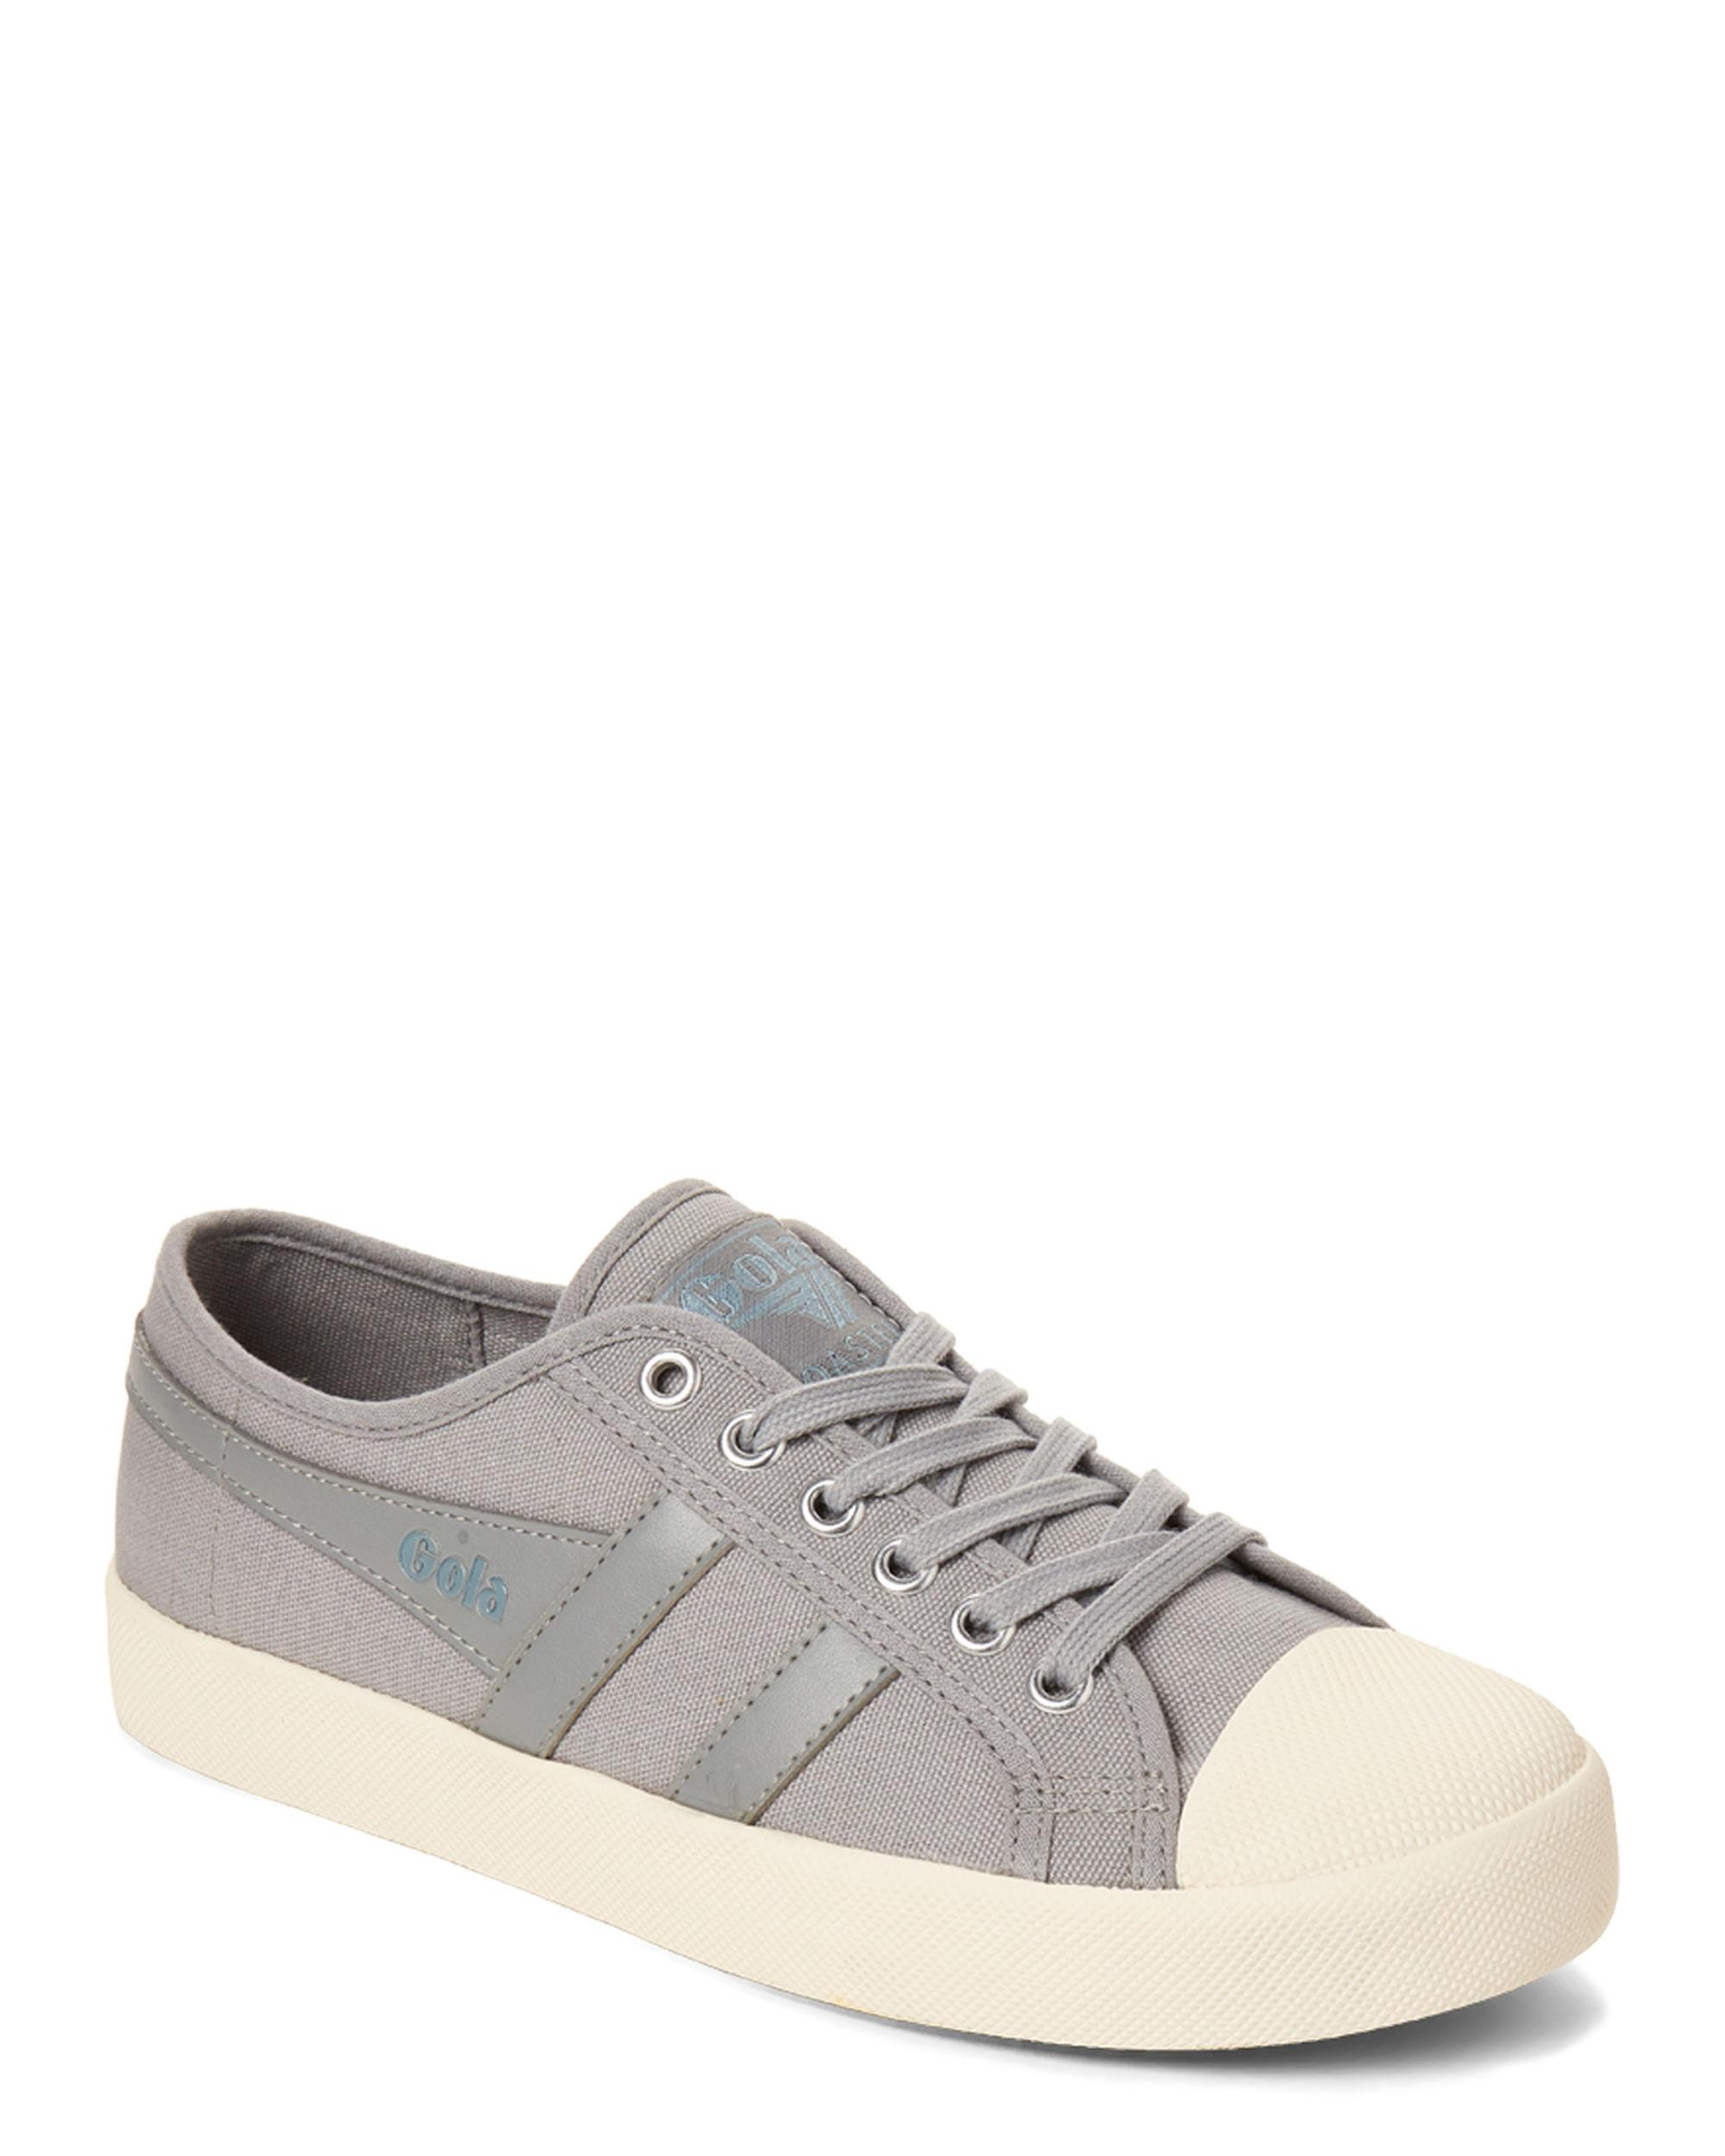 2861ccfb0d4 Lyst - Gola Paloma   Off-white Coaster Canvas Low-top Sneakers in White